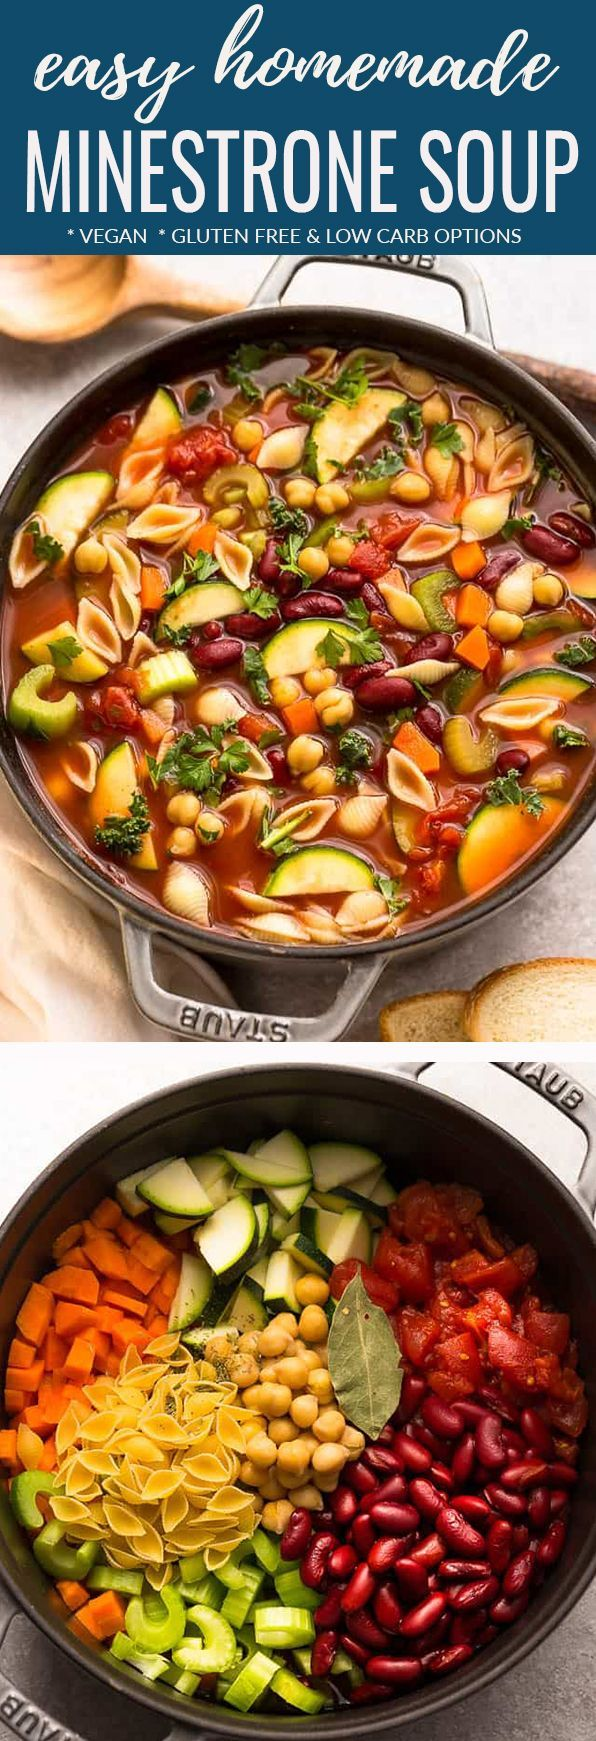 Homemade Minestrone Soup – the perfect easy comforting meal on a chilly day. B…